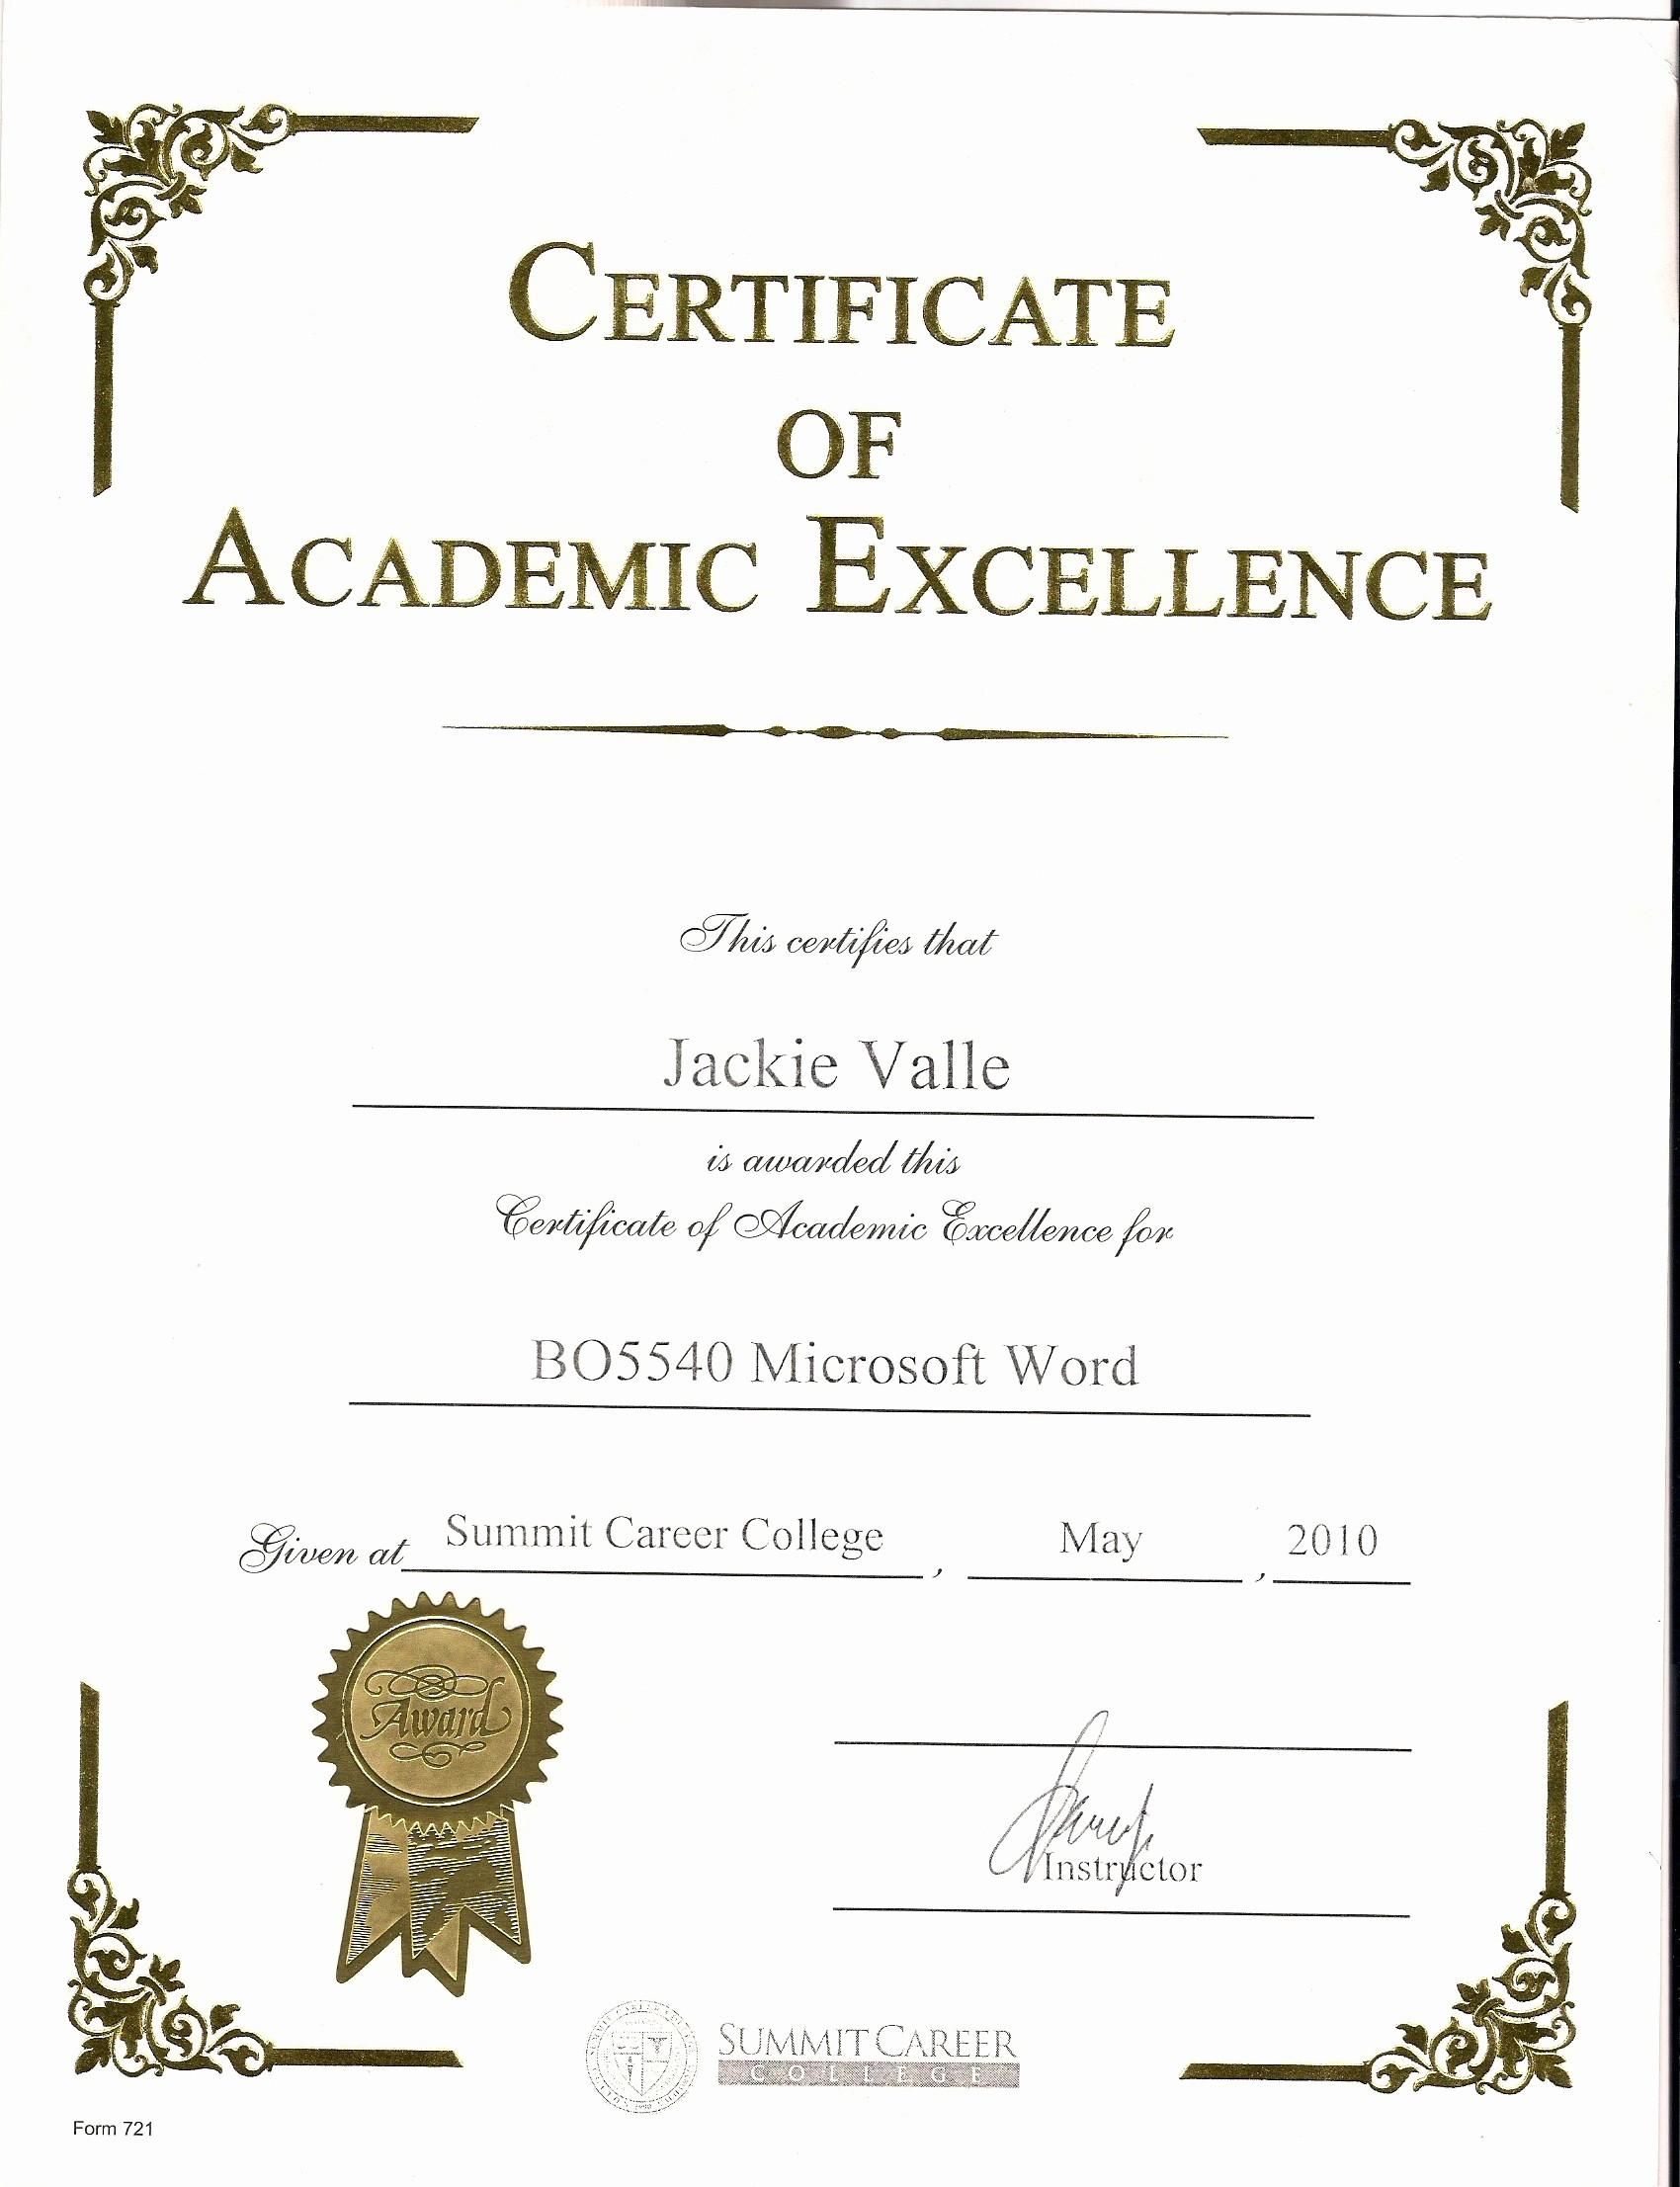 Certificate Of Excellence Template Word Best Of Awards and Certificates Jacqueline Valle Professional